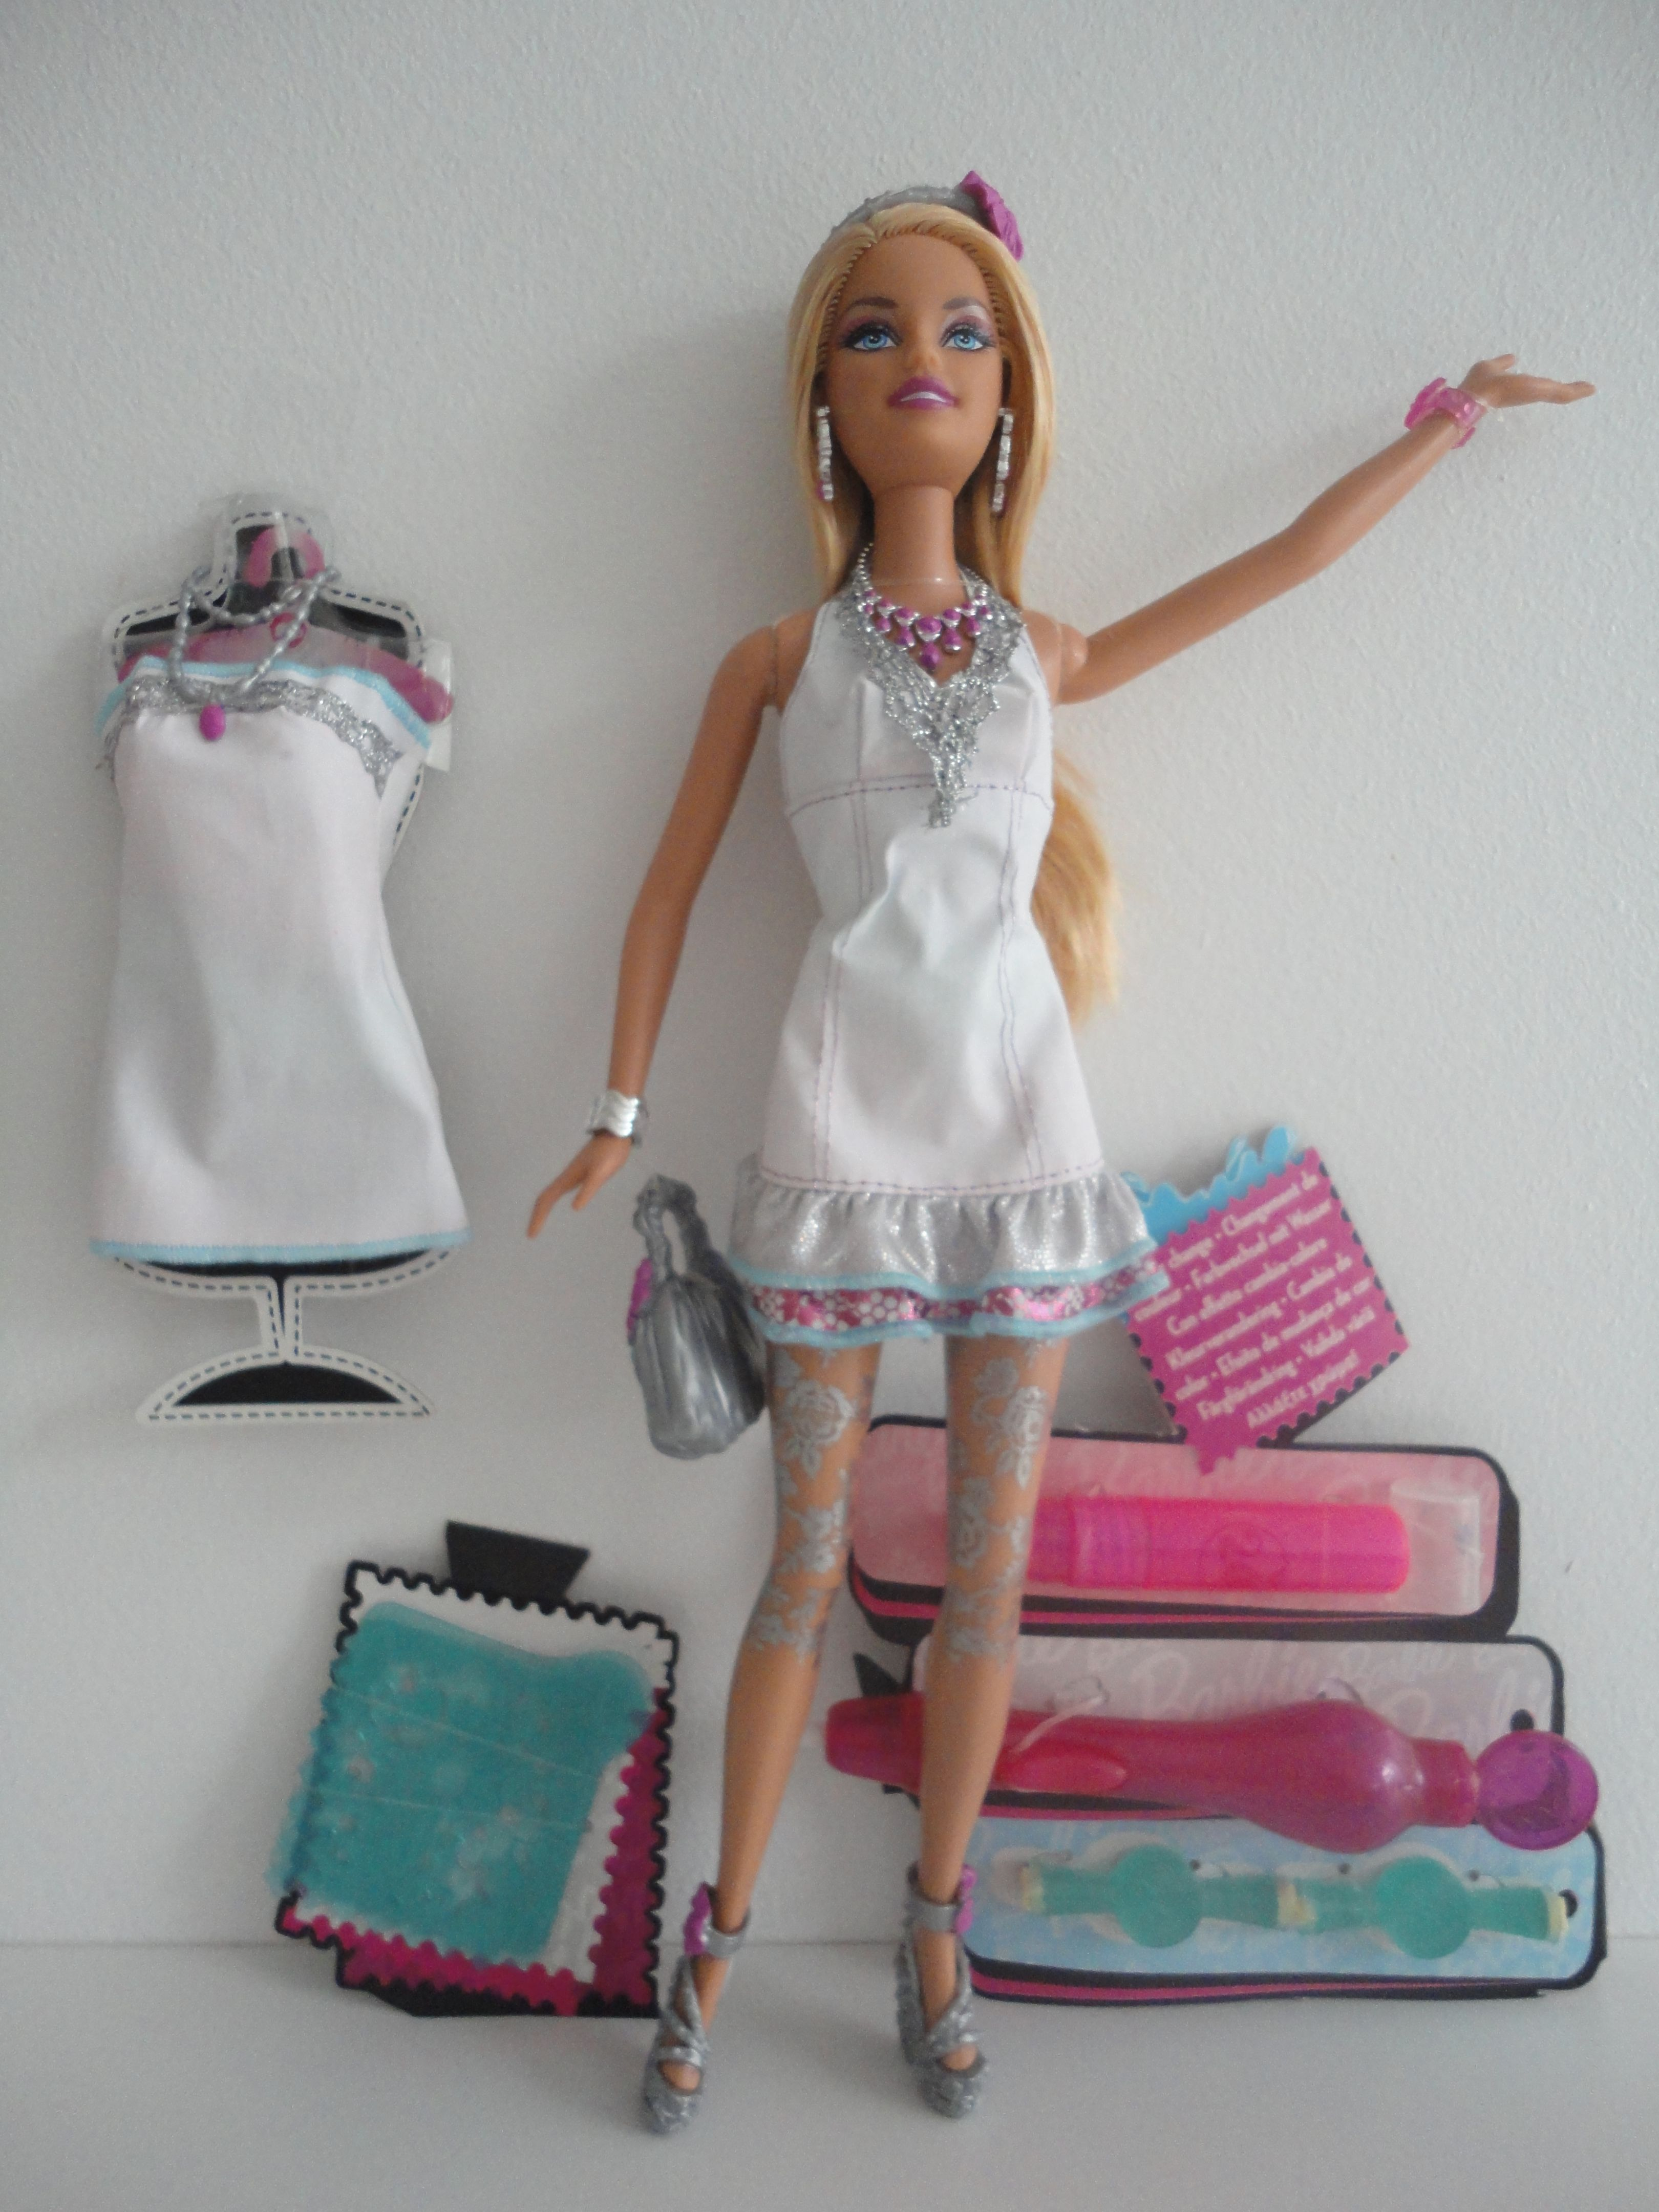 Barbie H2o Design Studio Bd2009 R4279 In 2020 Barbie Barbie Fashion Fashion